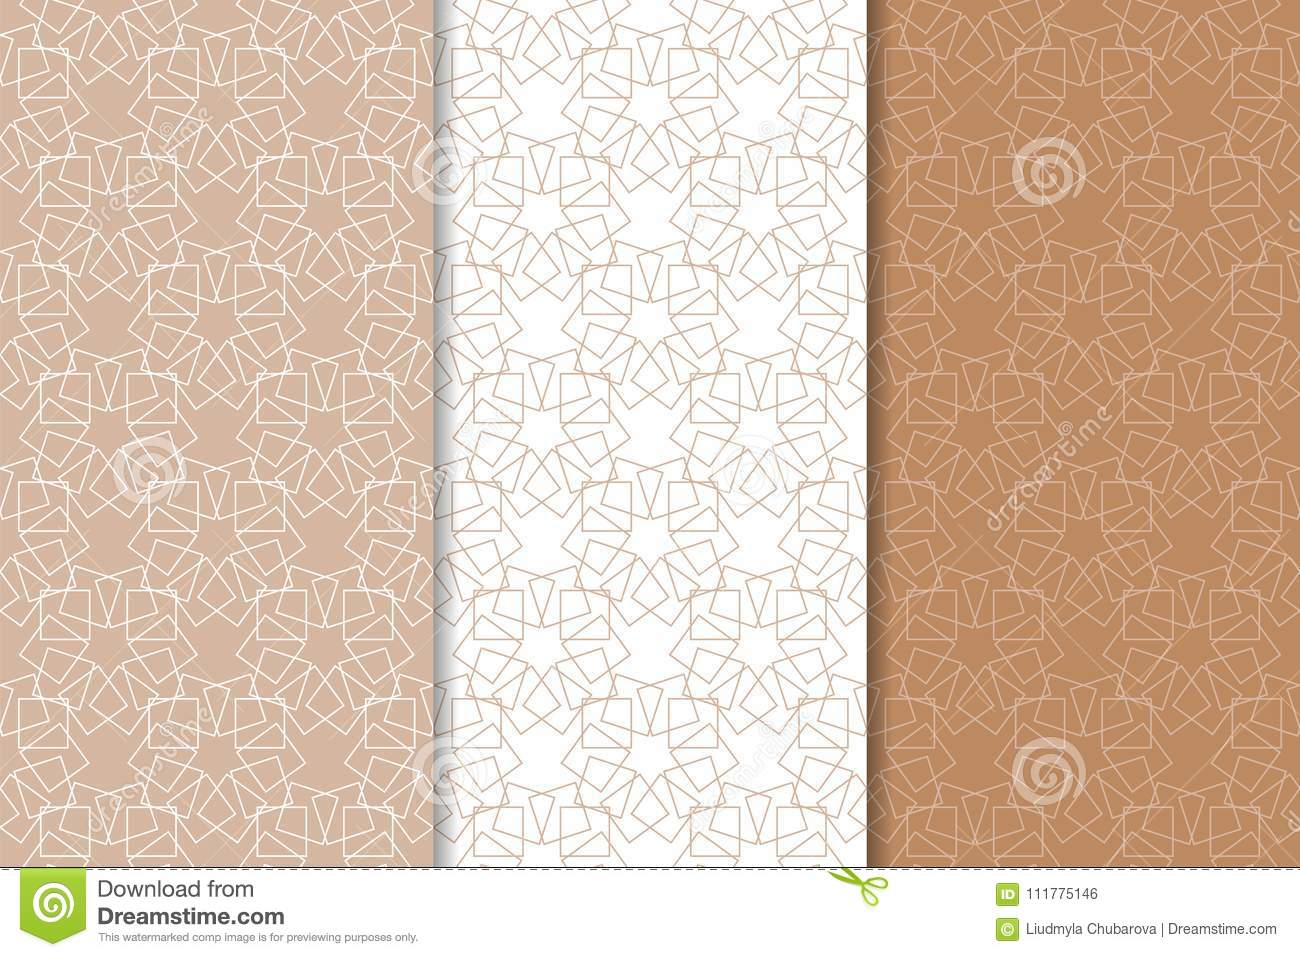 Brown and white geometric set of seamless patterns